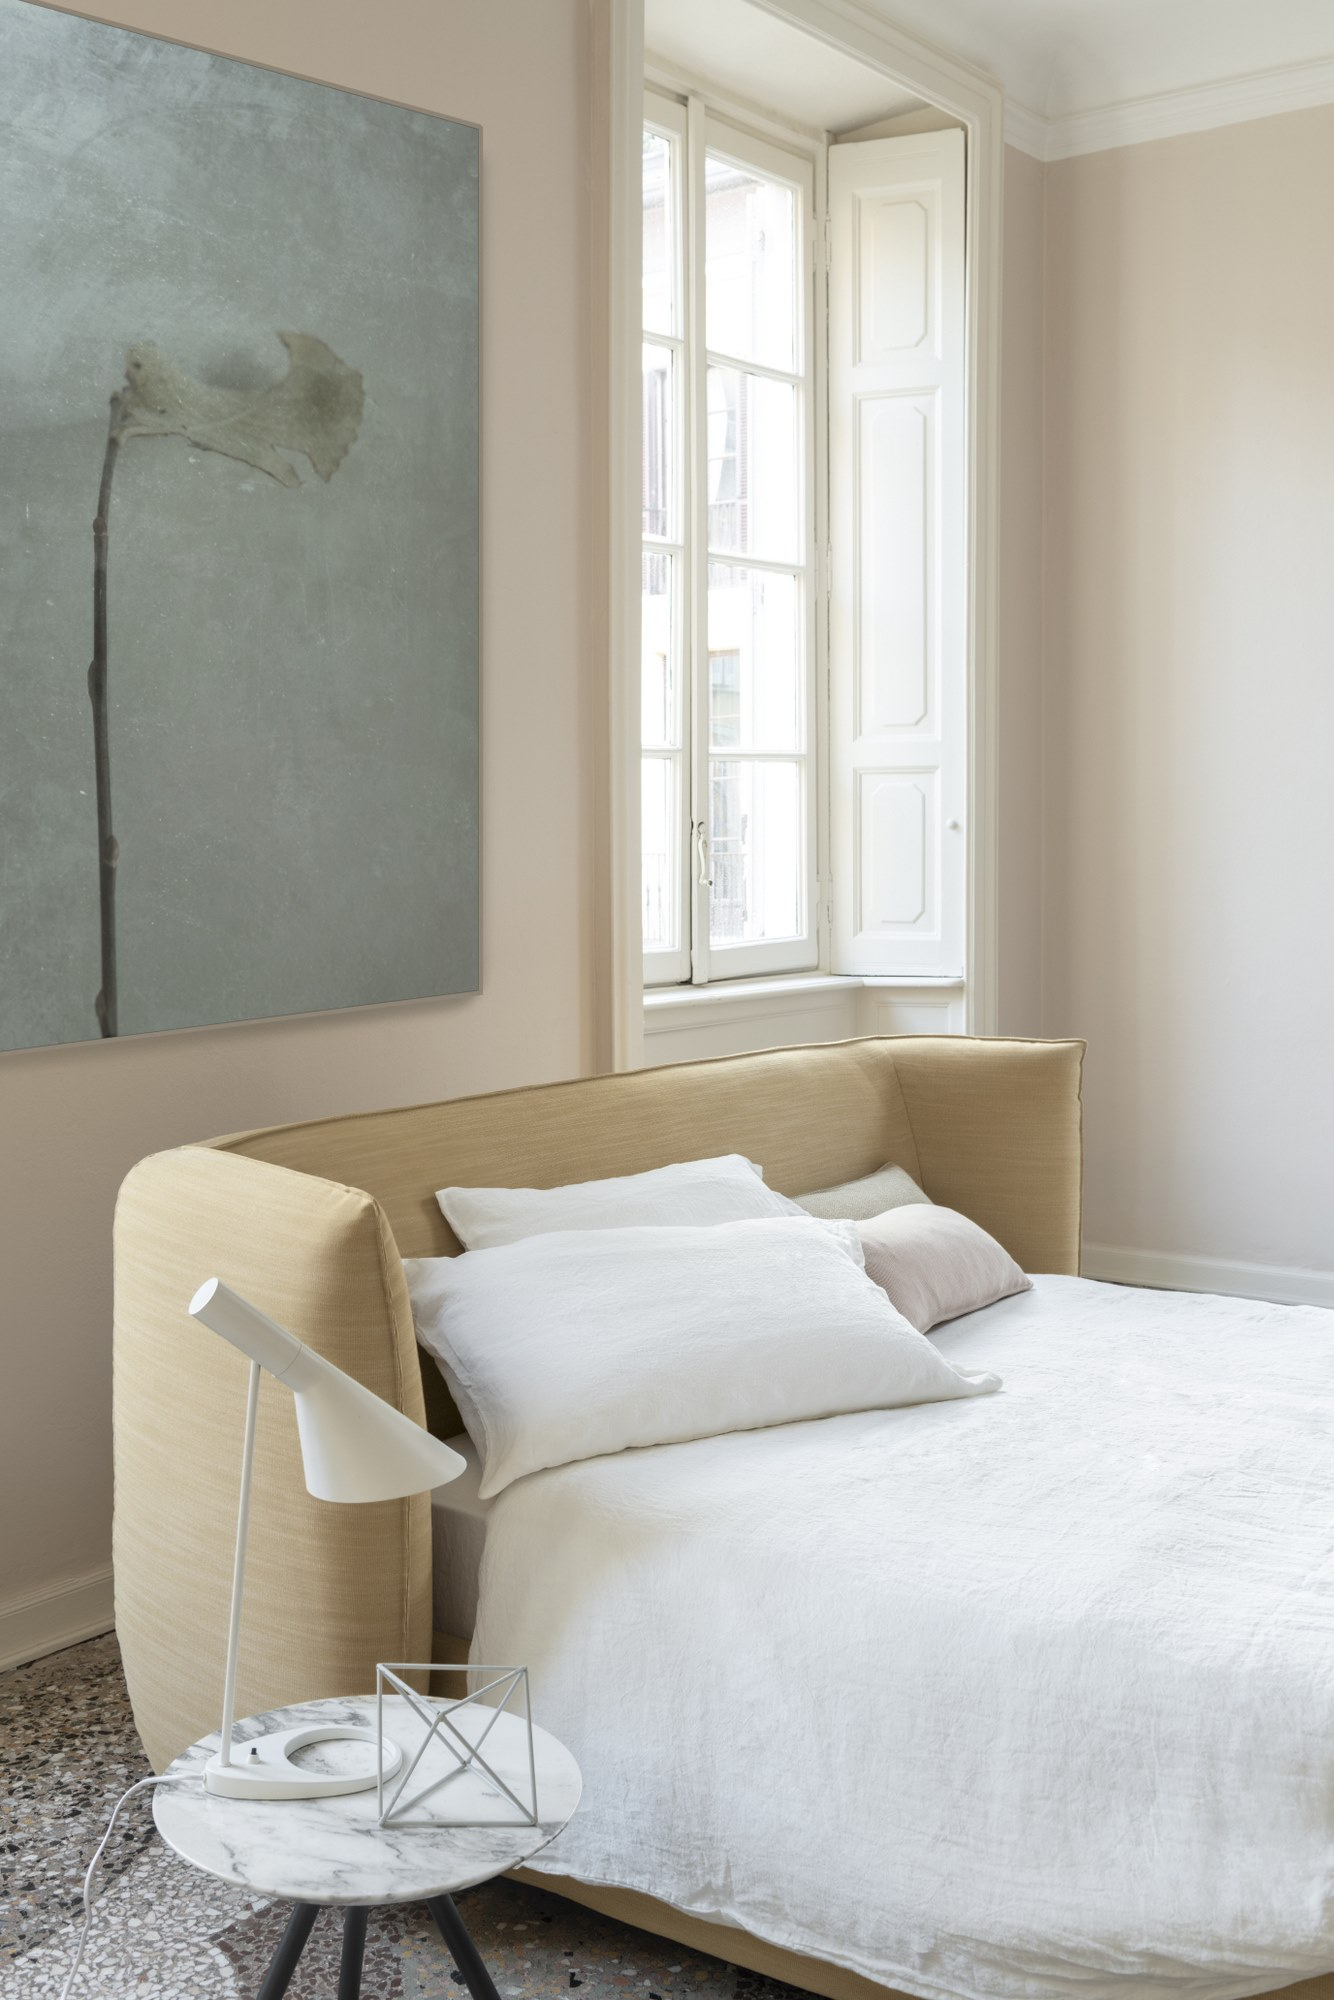 Jill Bed - Jill envelops thoughts and dreams by the embrace of its headboard, creating a comfortable intimate atmosphere. Its soft and generous shapes have a leading role in the night space, dominating also the room center.   All beds are available in different sizes and frame options. Please enquire for more details. | Matter of Stuff